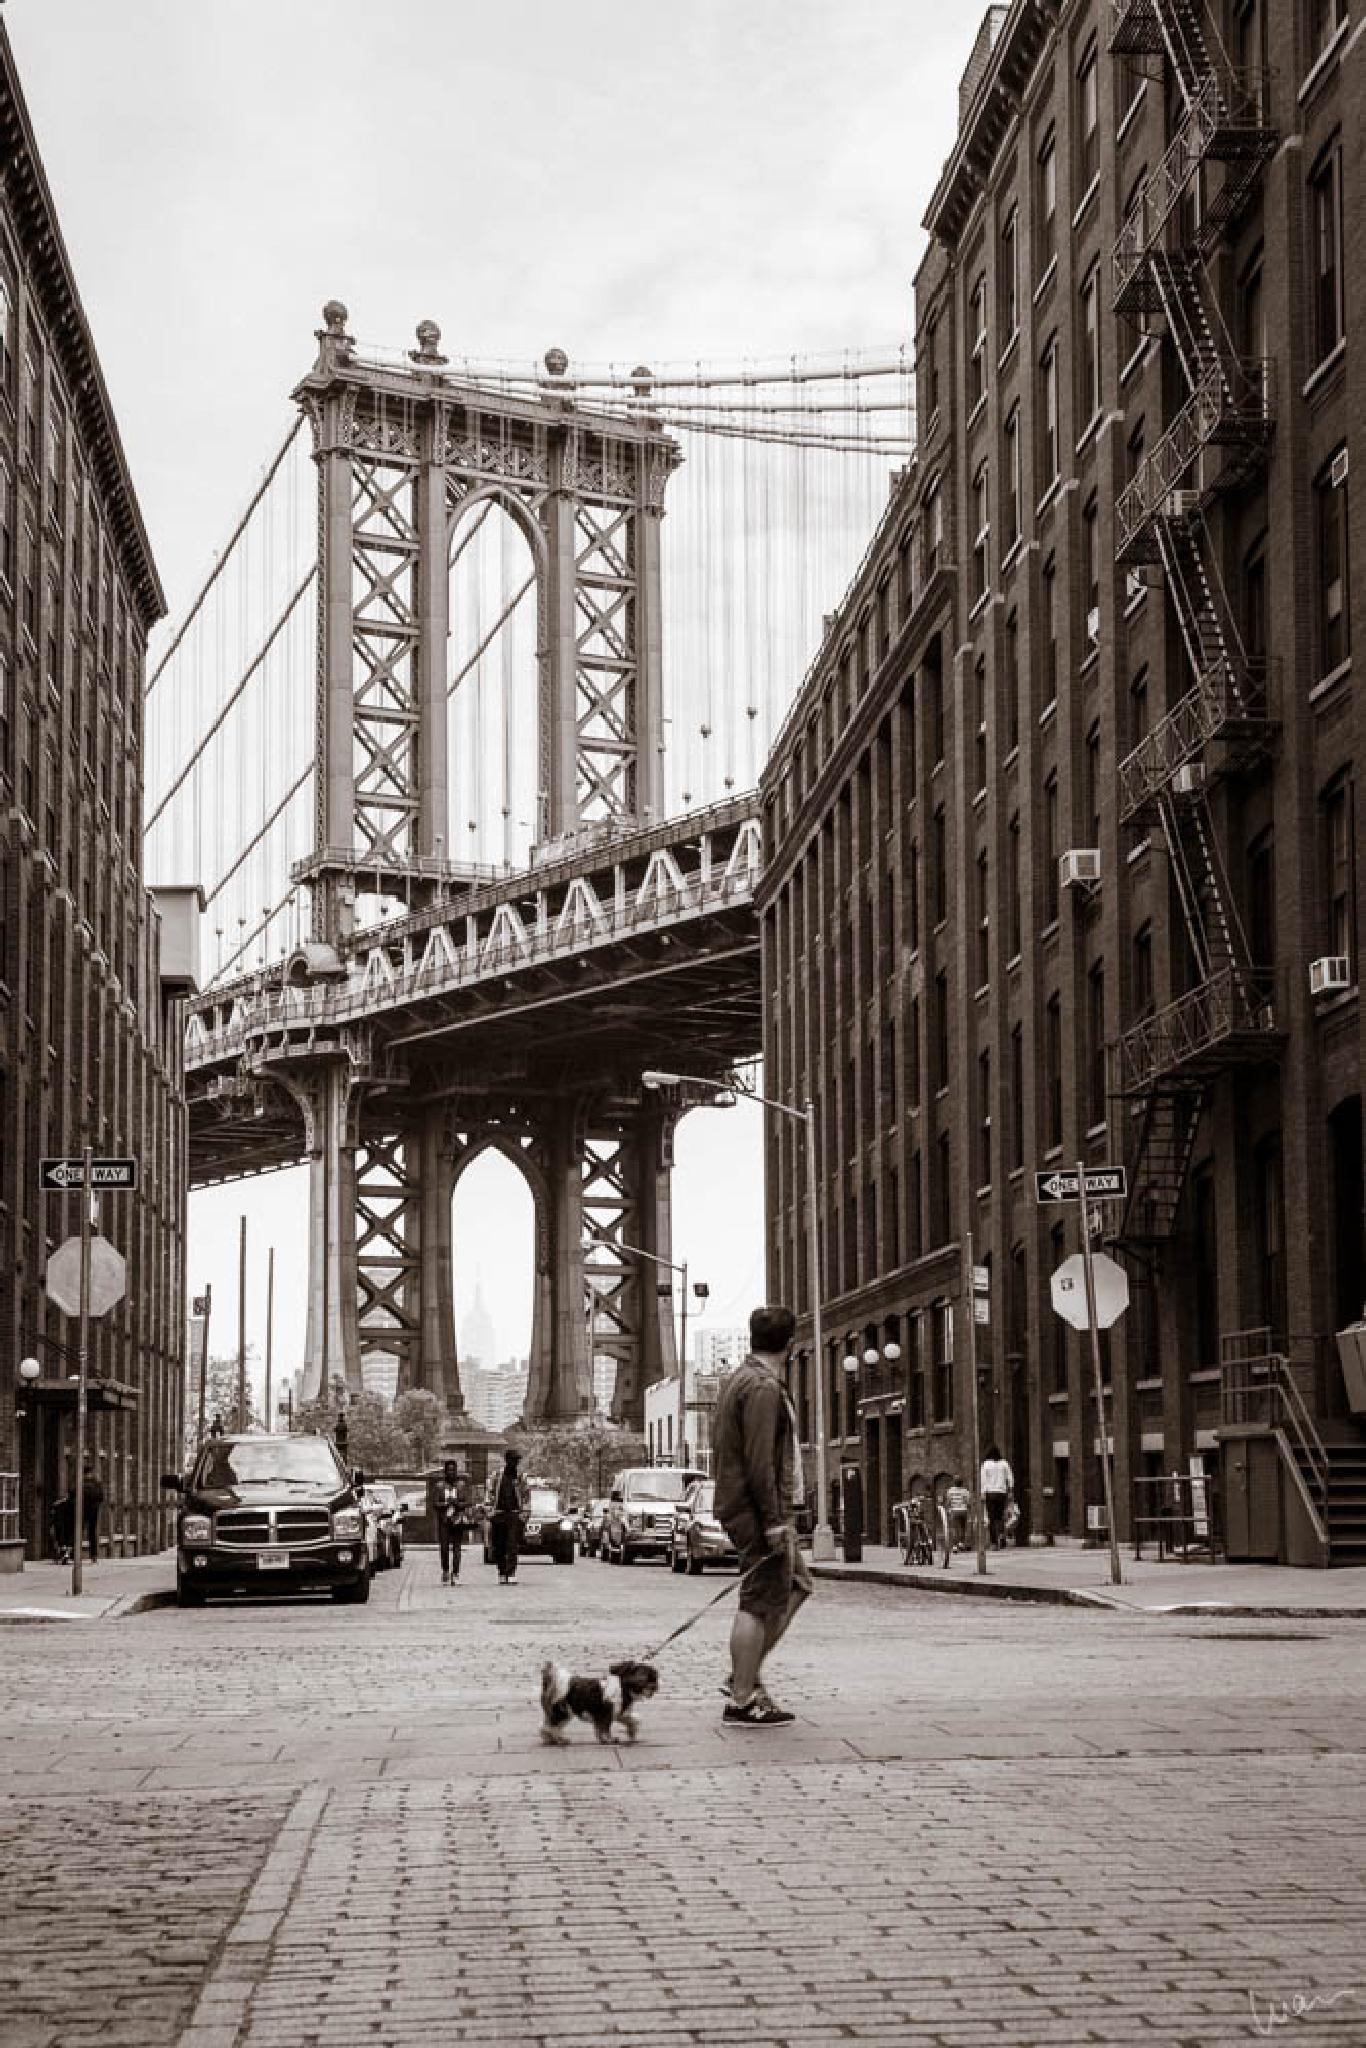 Once upon a time in America by Ivan Fernandez